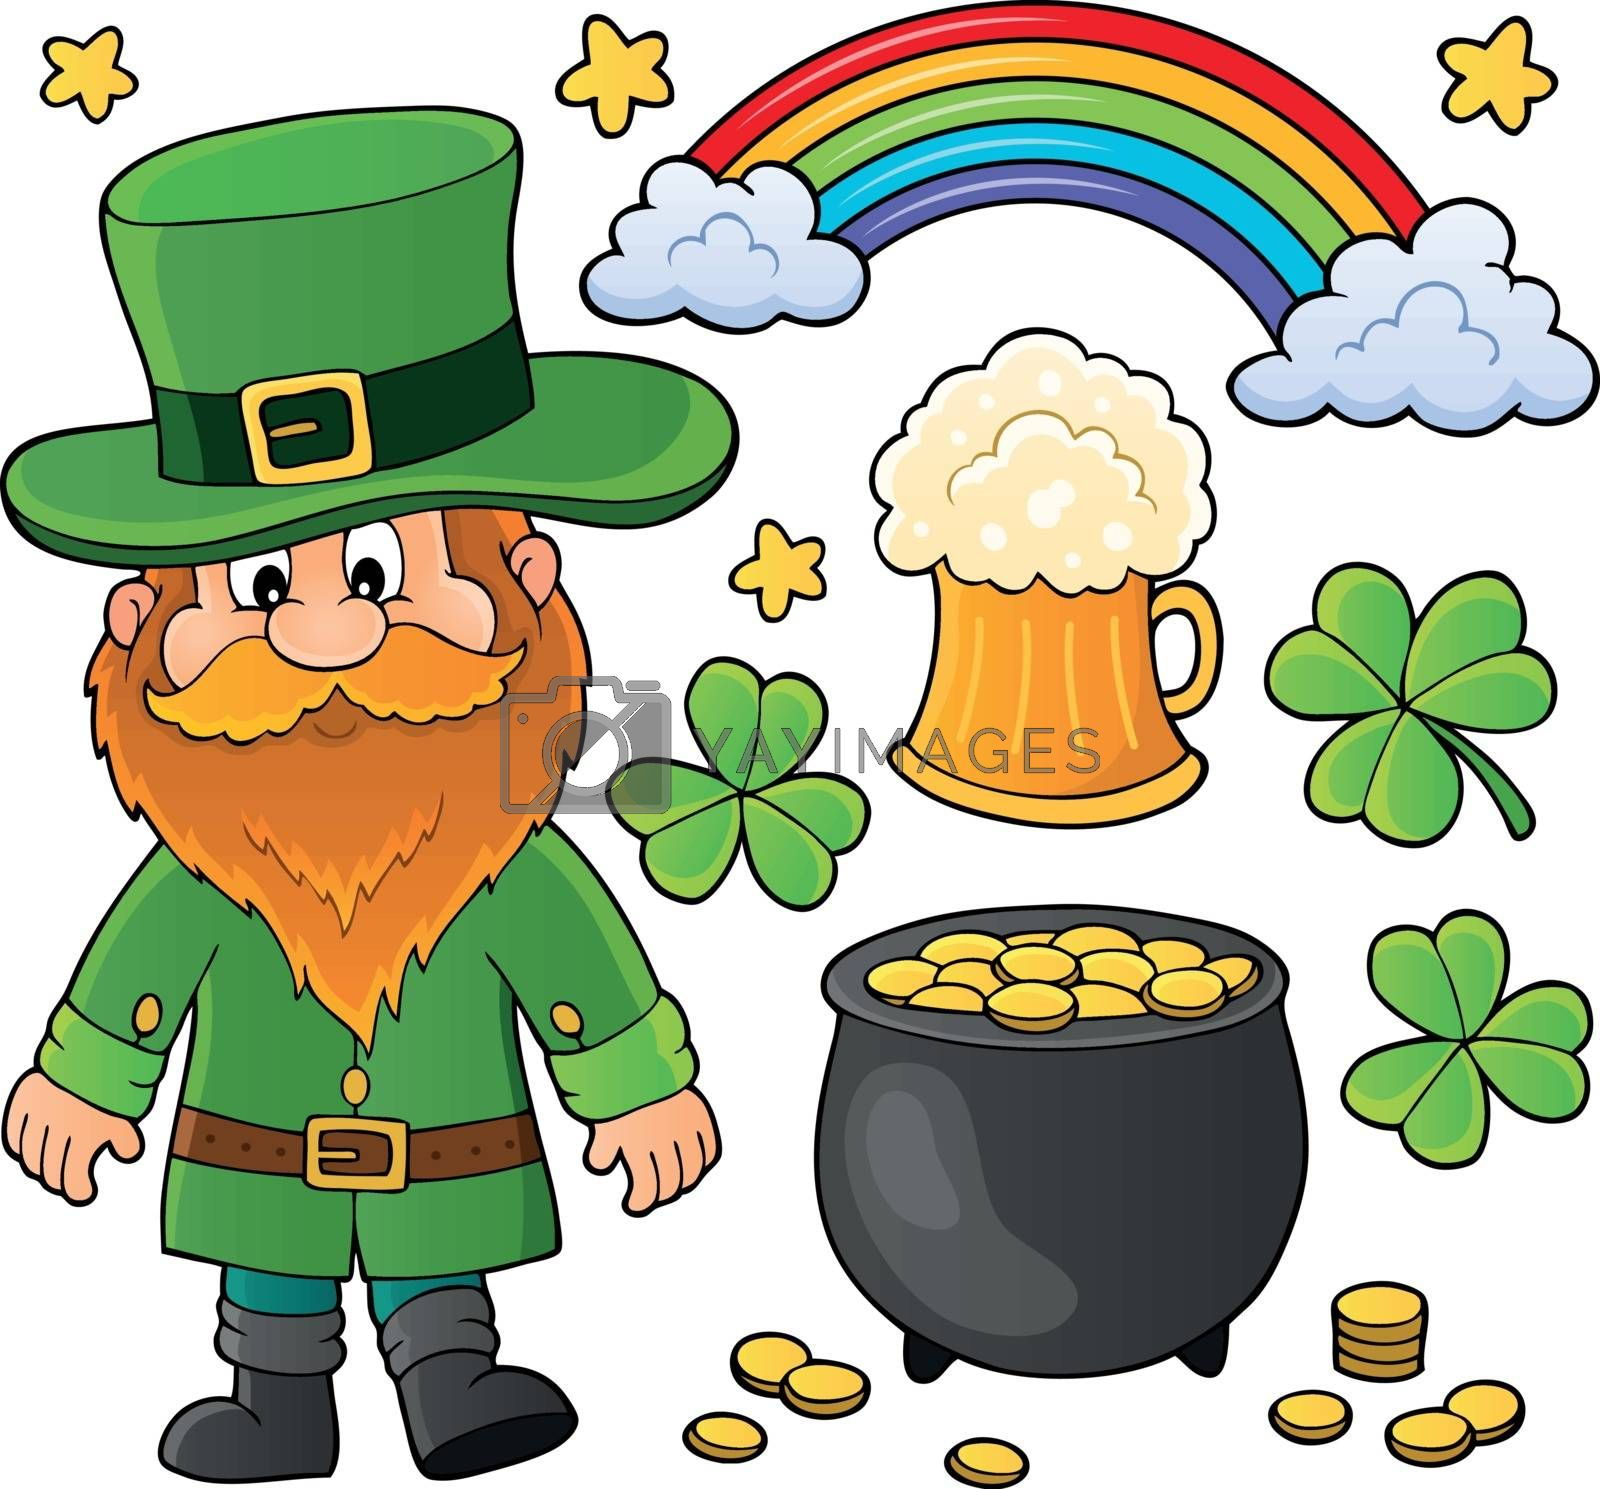 St Patricks Day theme set 1 - eps10 vector illustration.